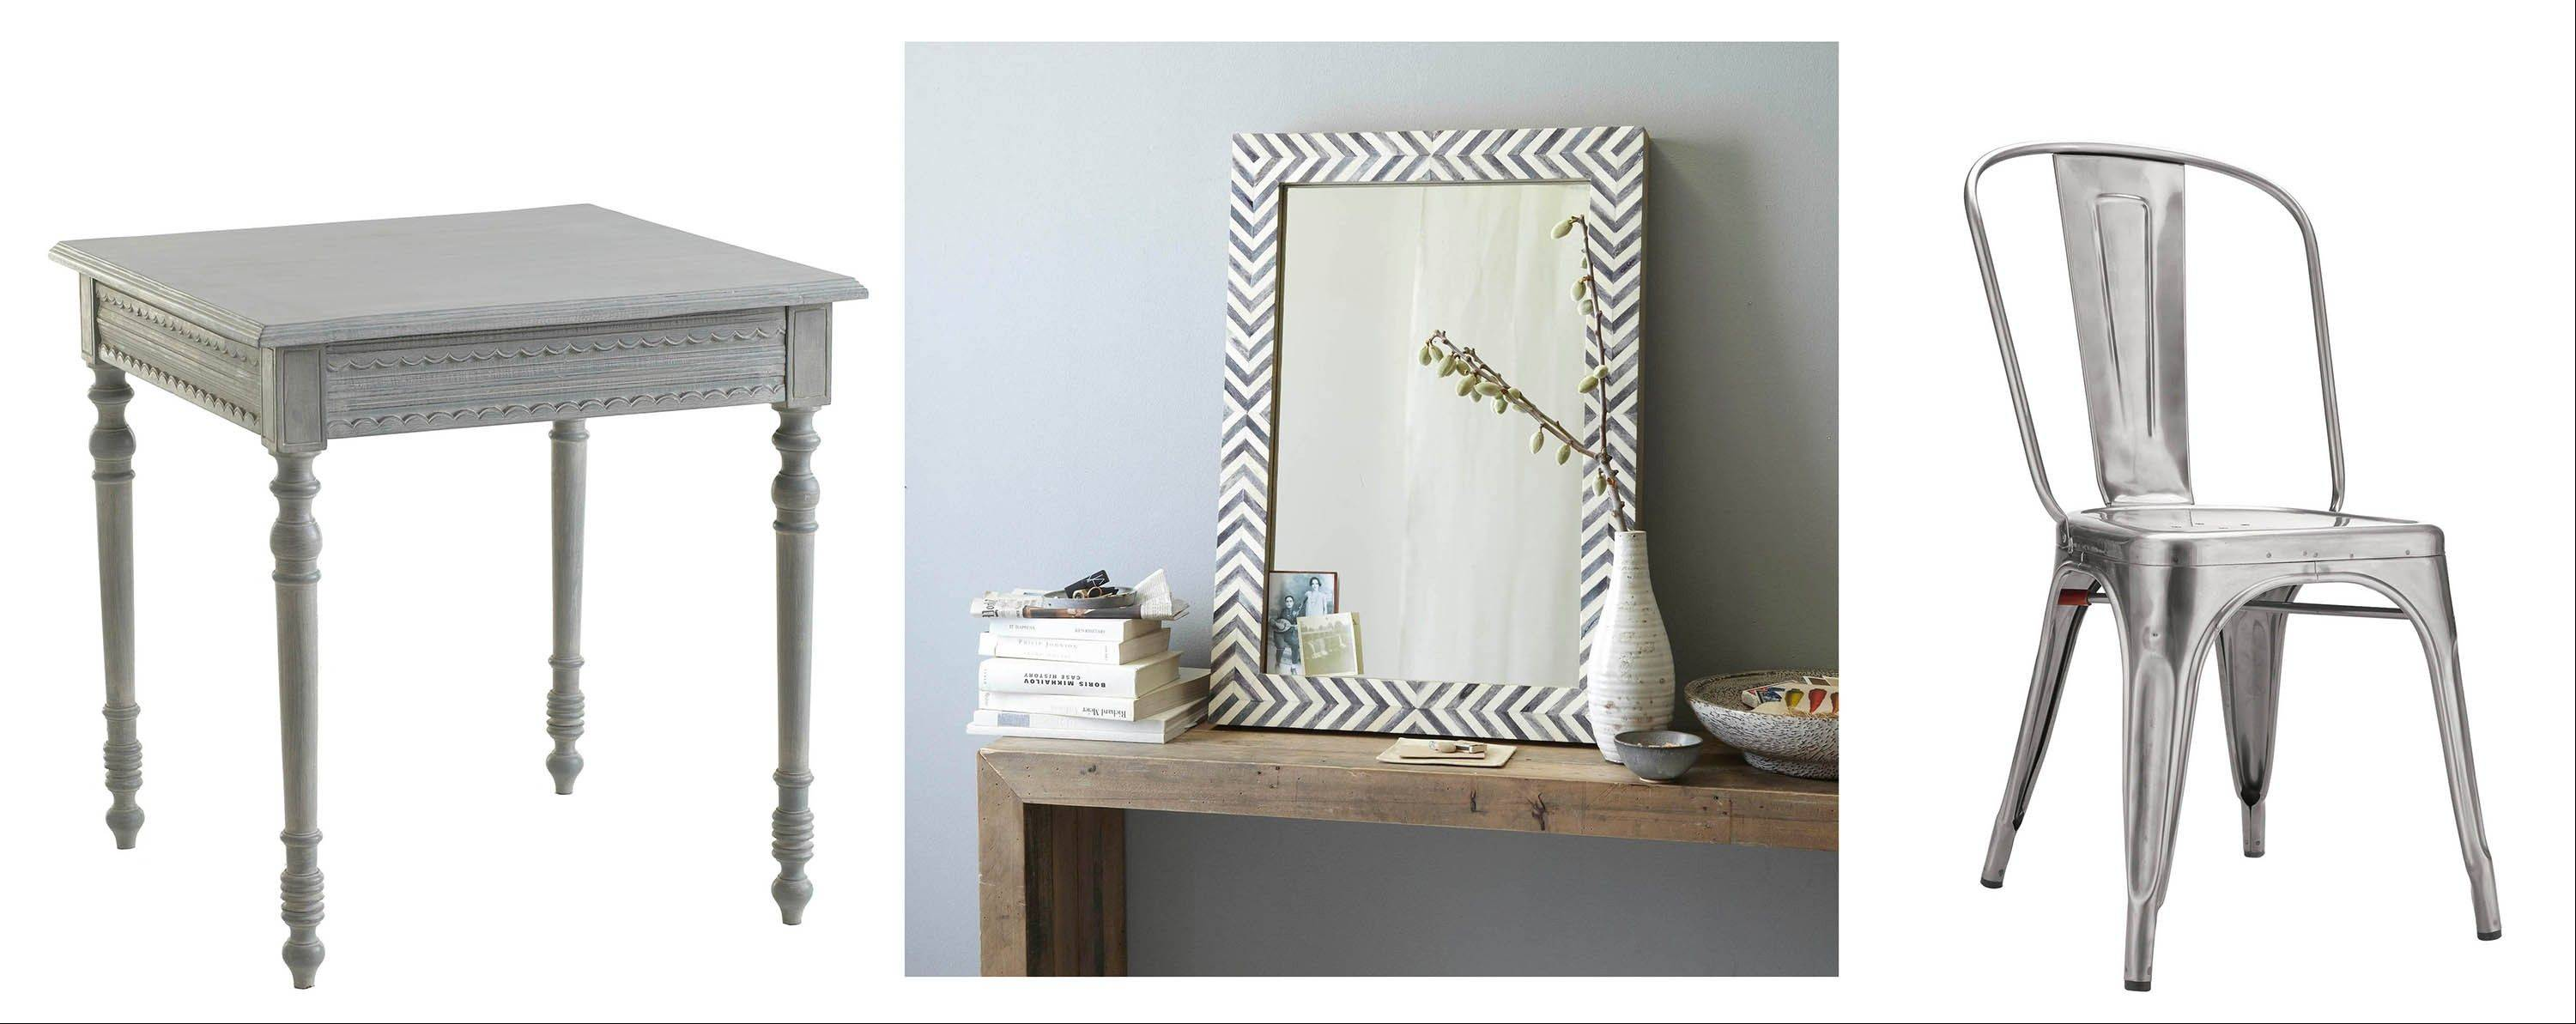 Gray is the new beige, and items in that shade will add a touch of silvery sophistication to your rooms. Left to right, Wisteria's Swedish Table; Parsons Wall Mirror in gray herringbone; and the Tolix Marais A Chair, first designed for a 1934 ocean liner.